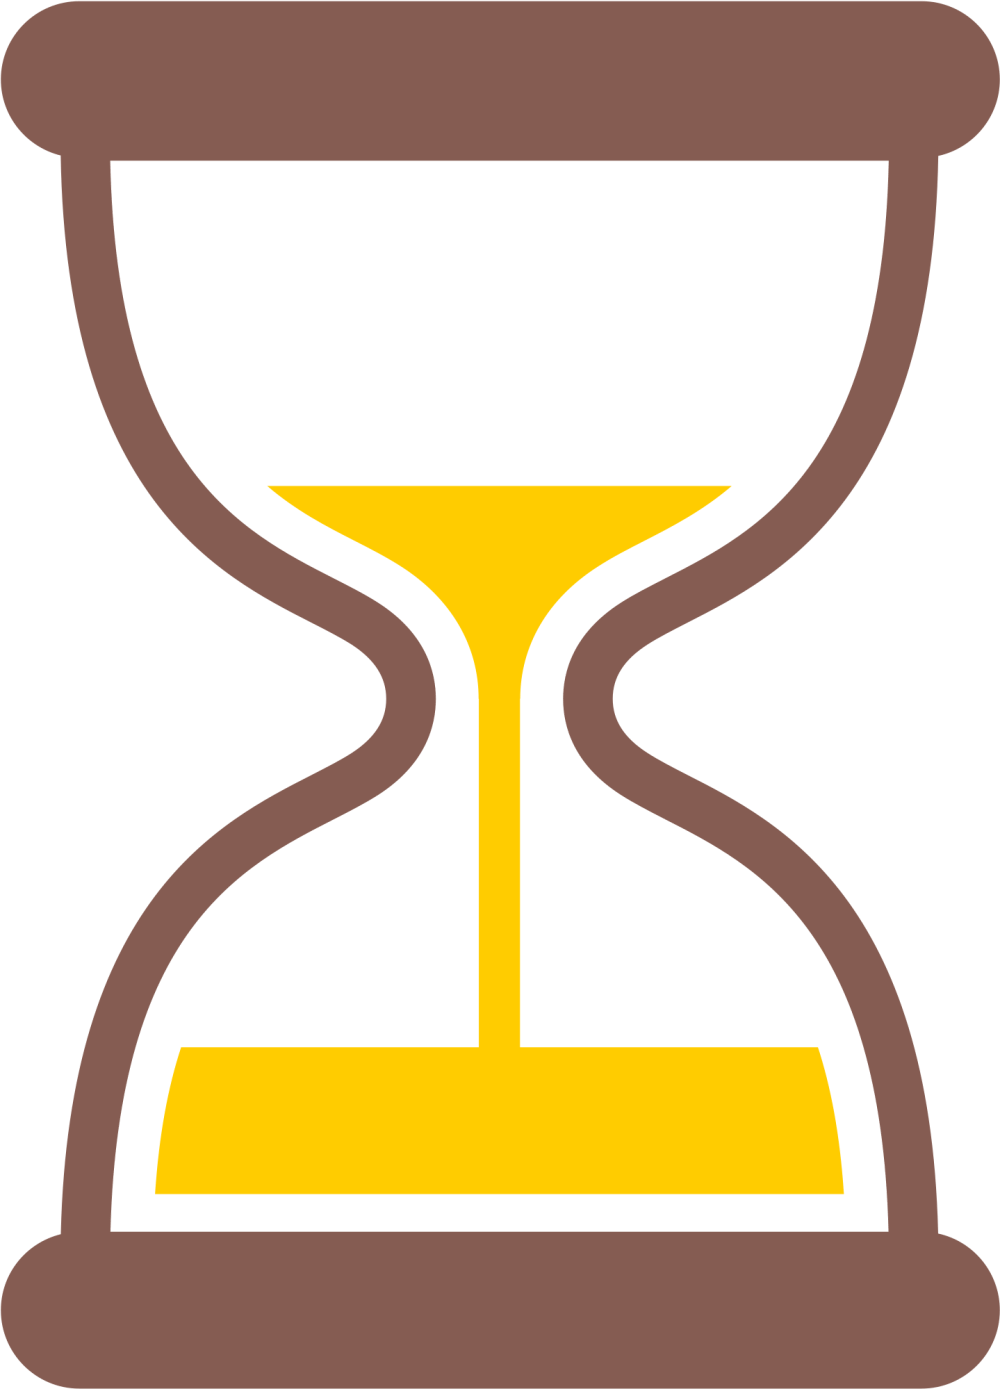 medium resolution of hourglass clipart yellow hourglass timer emoji png download 2000x2000 png download